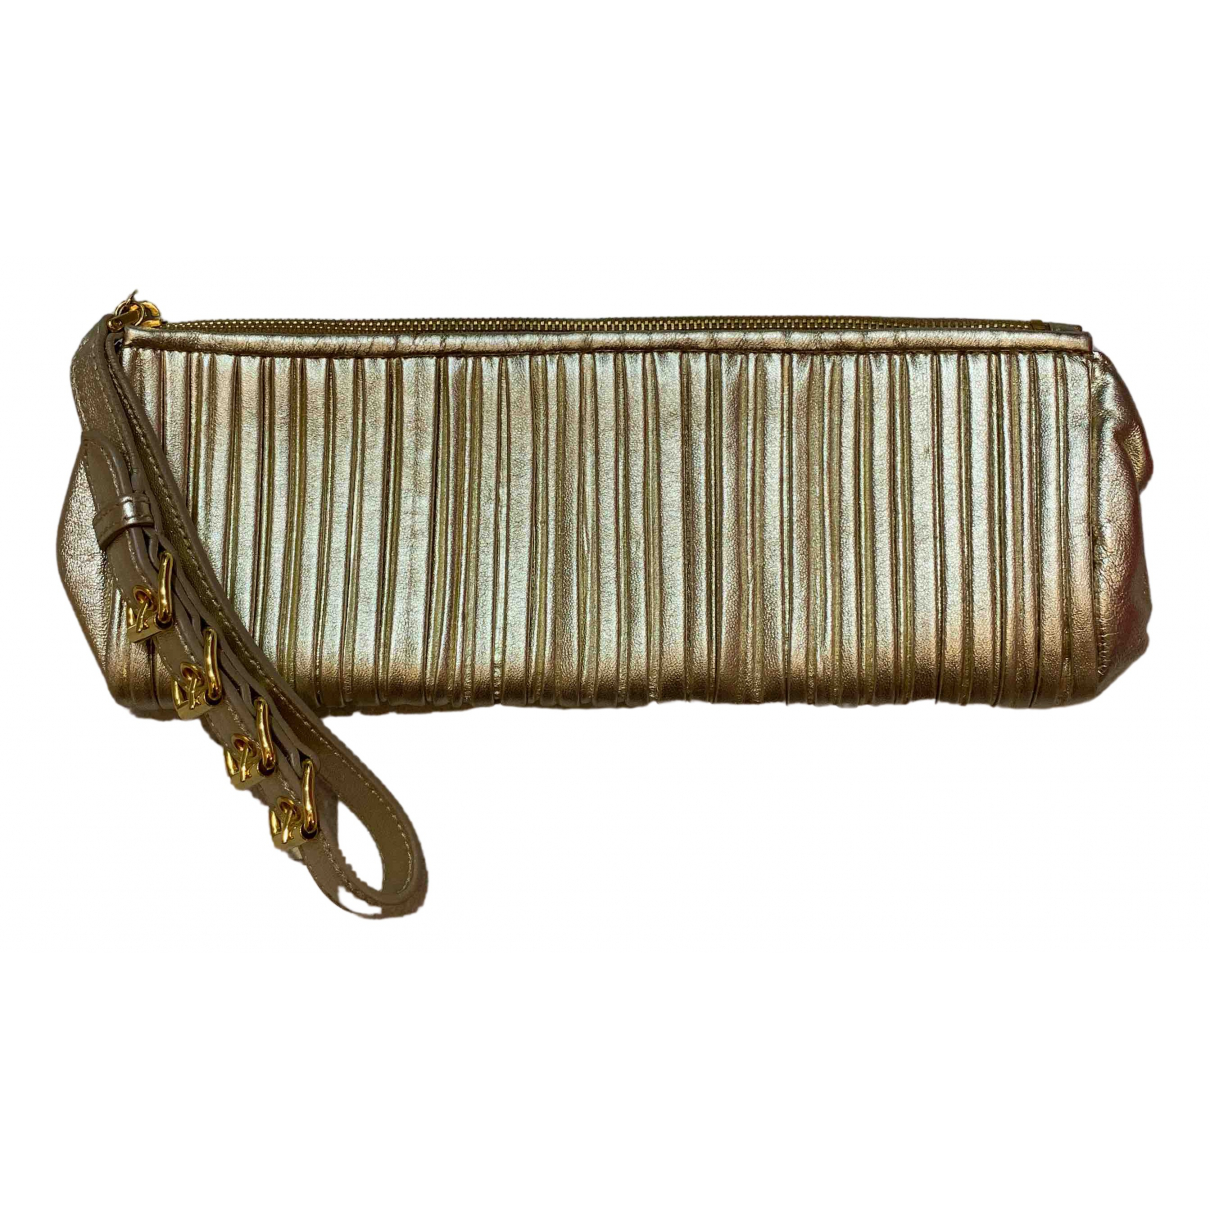 Miu Miu \N Clutch in  Gold Leder